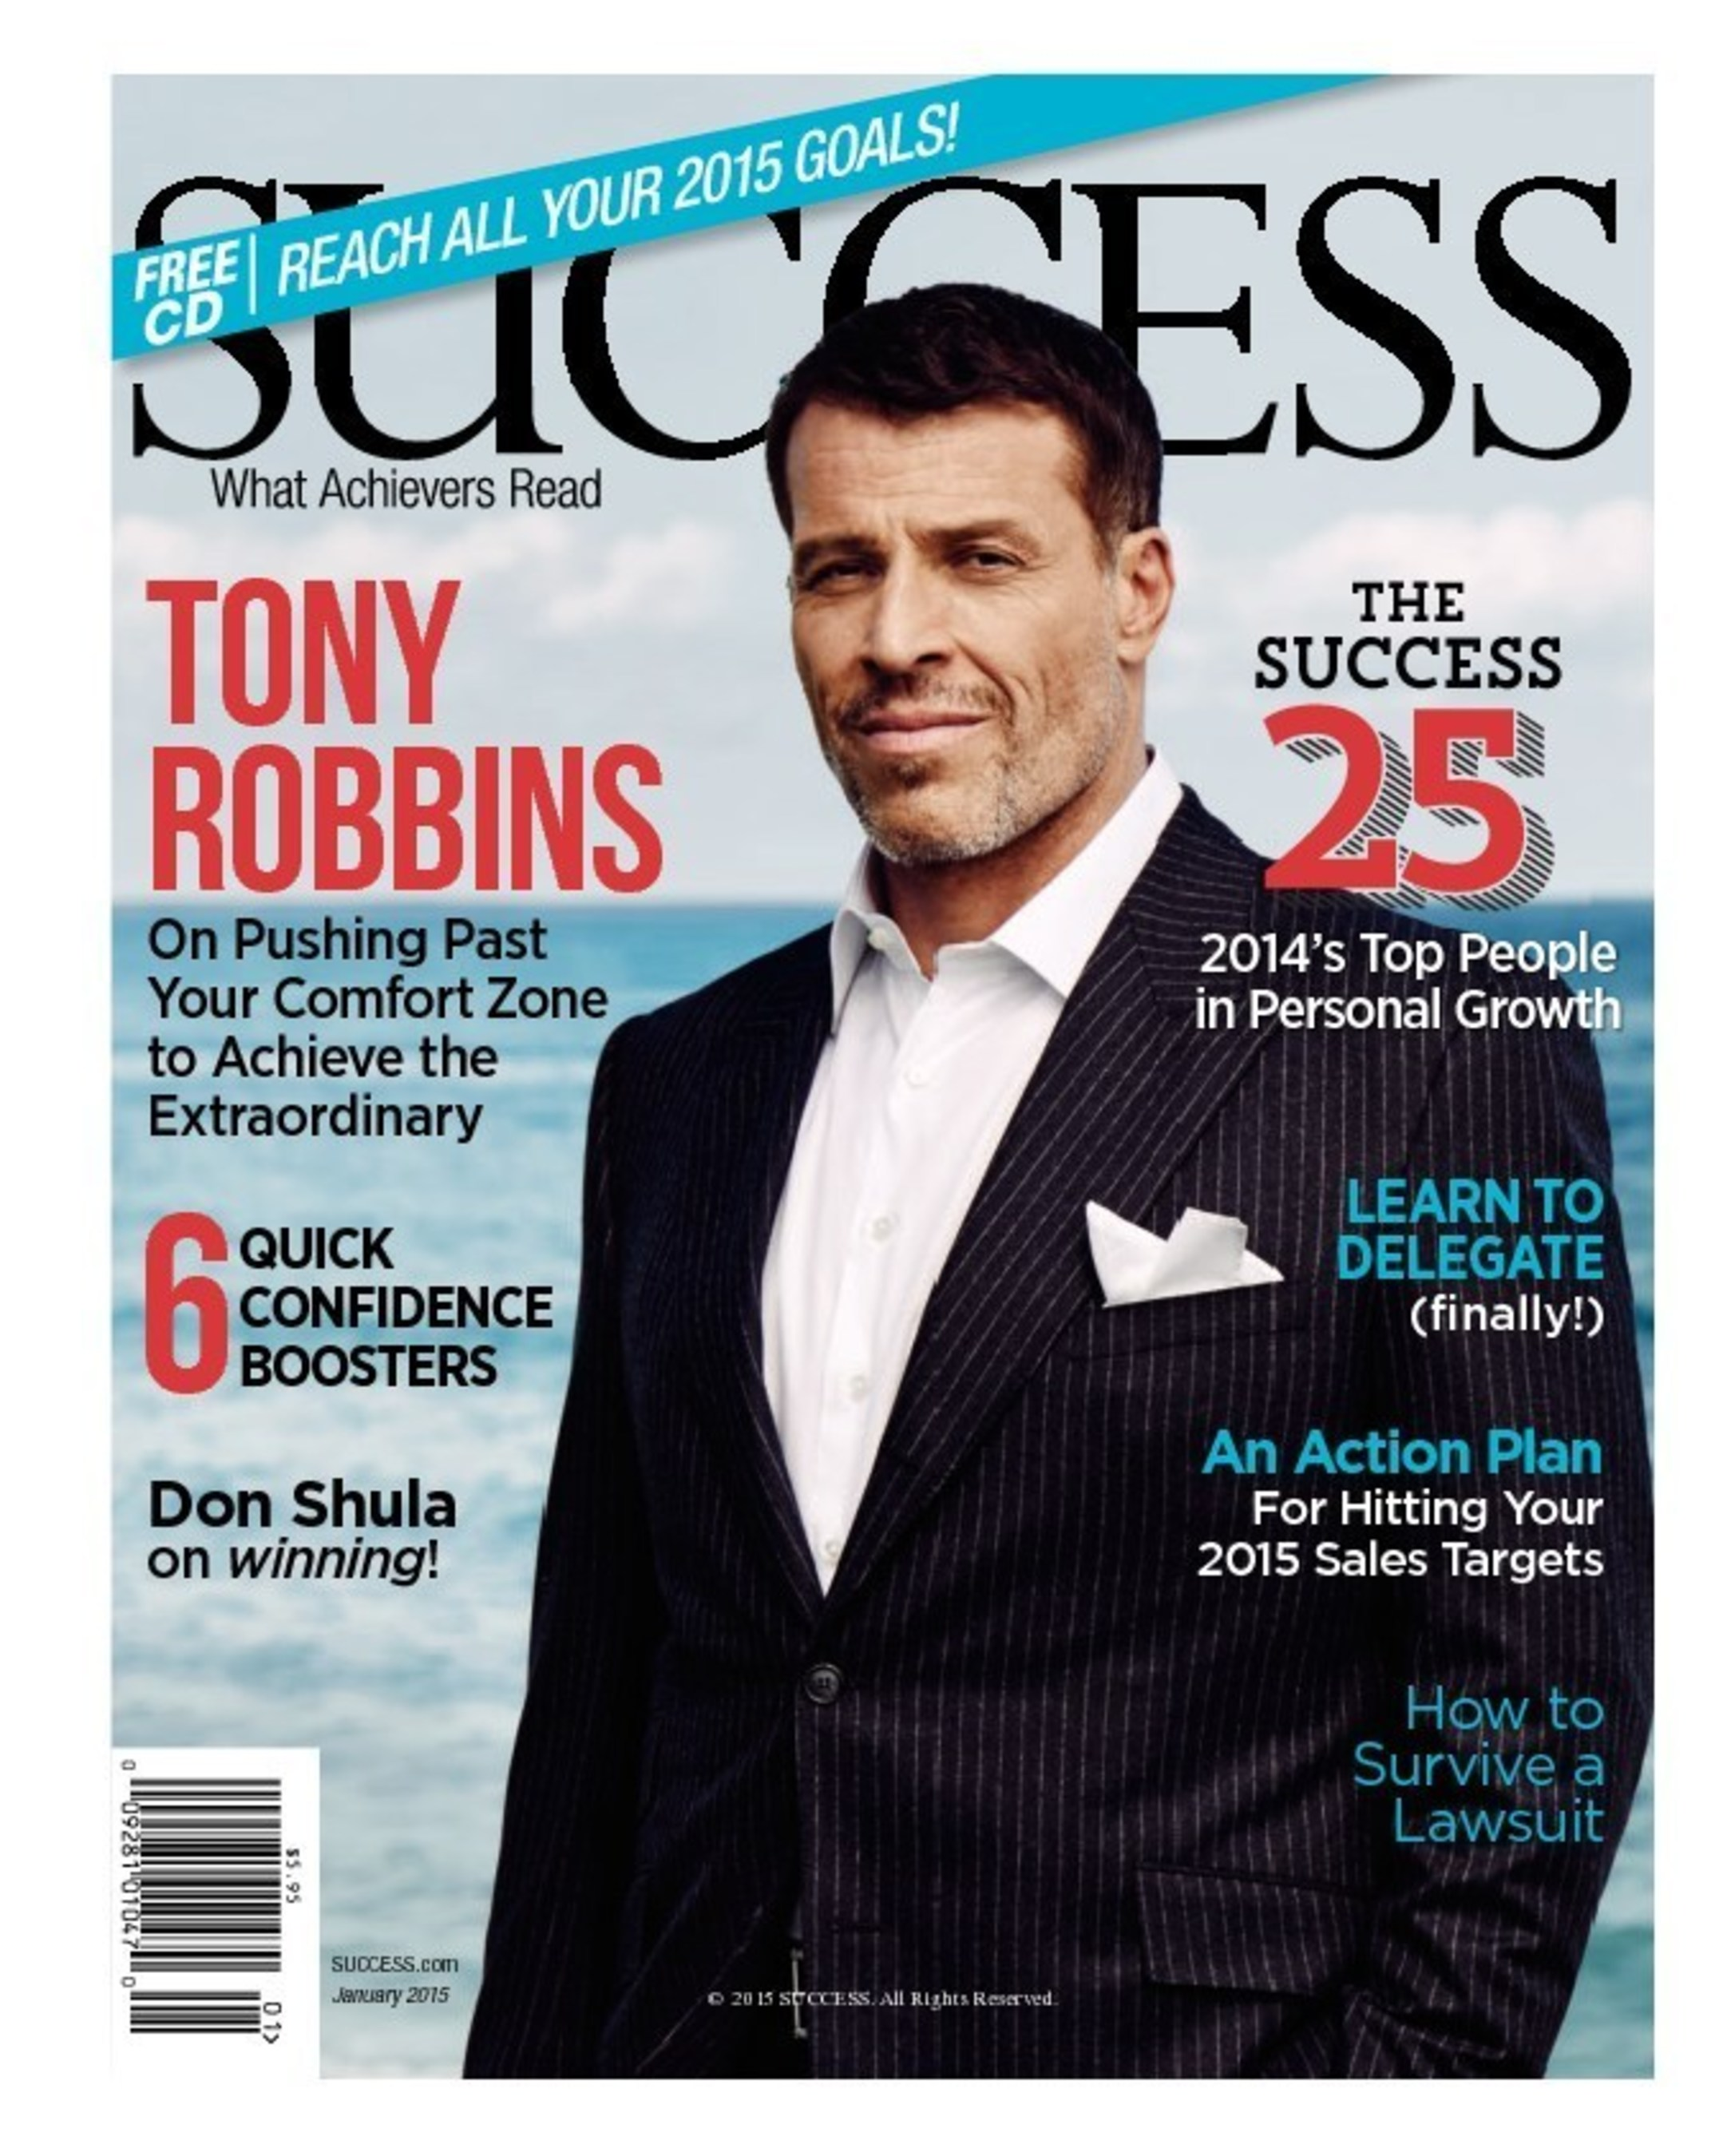 #1 Best-Selling Author Tony Robbins gives a deeply personal interview for the January 2015 SUCCESS magazine ...